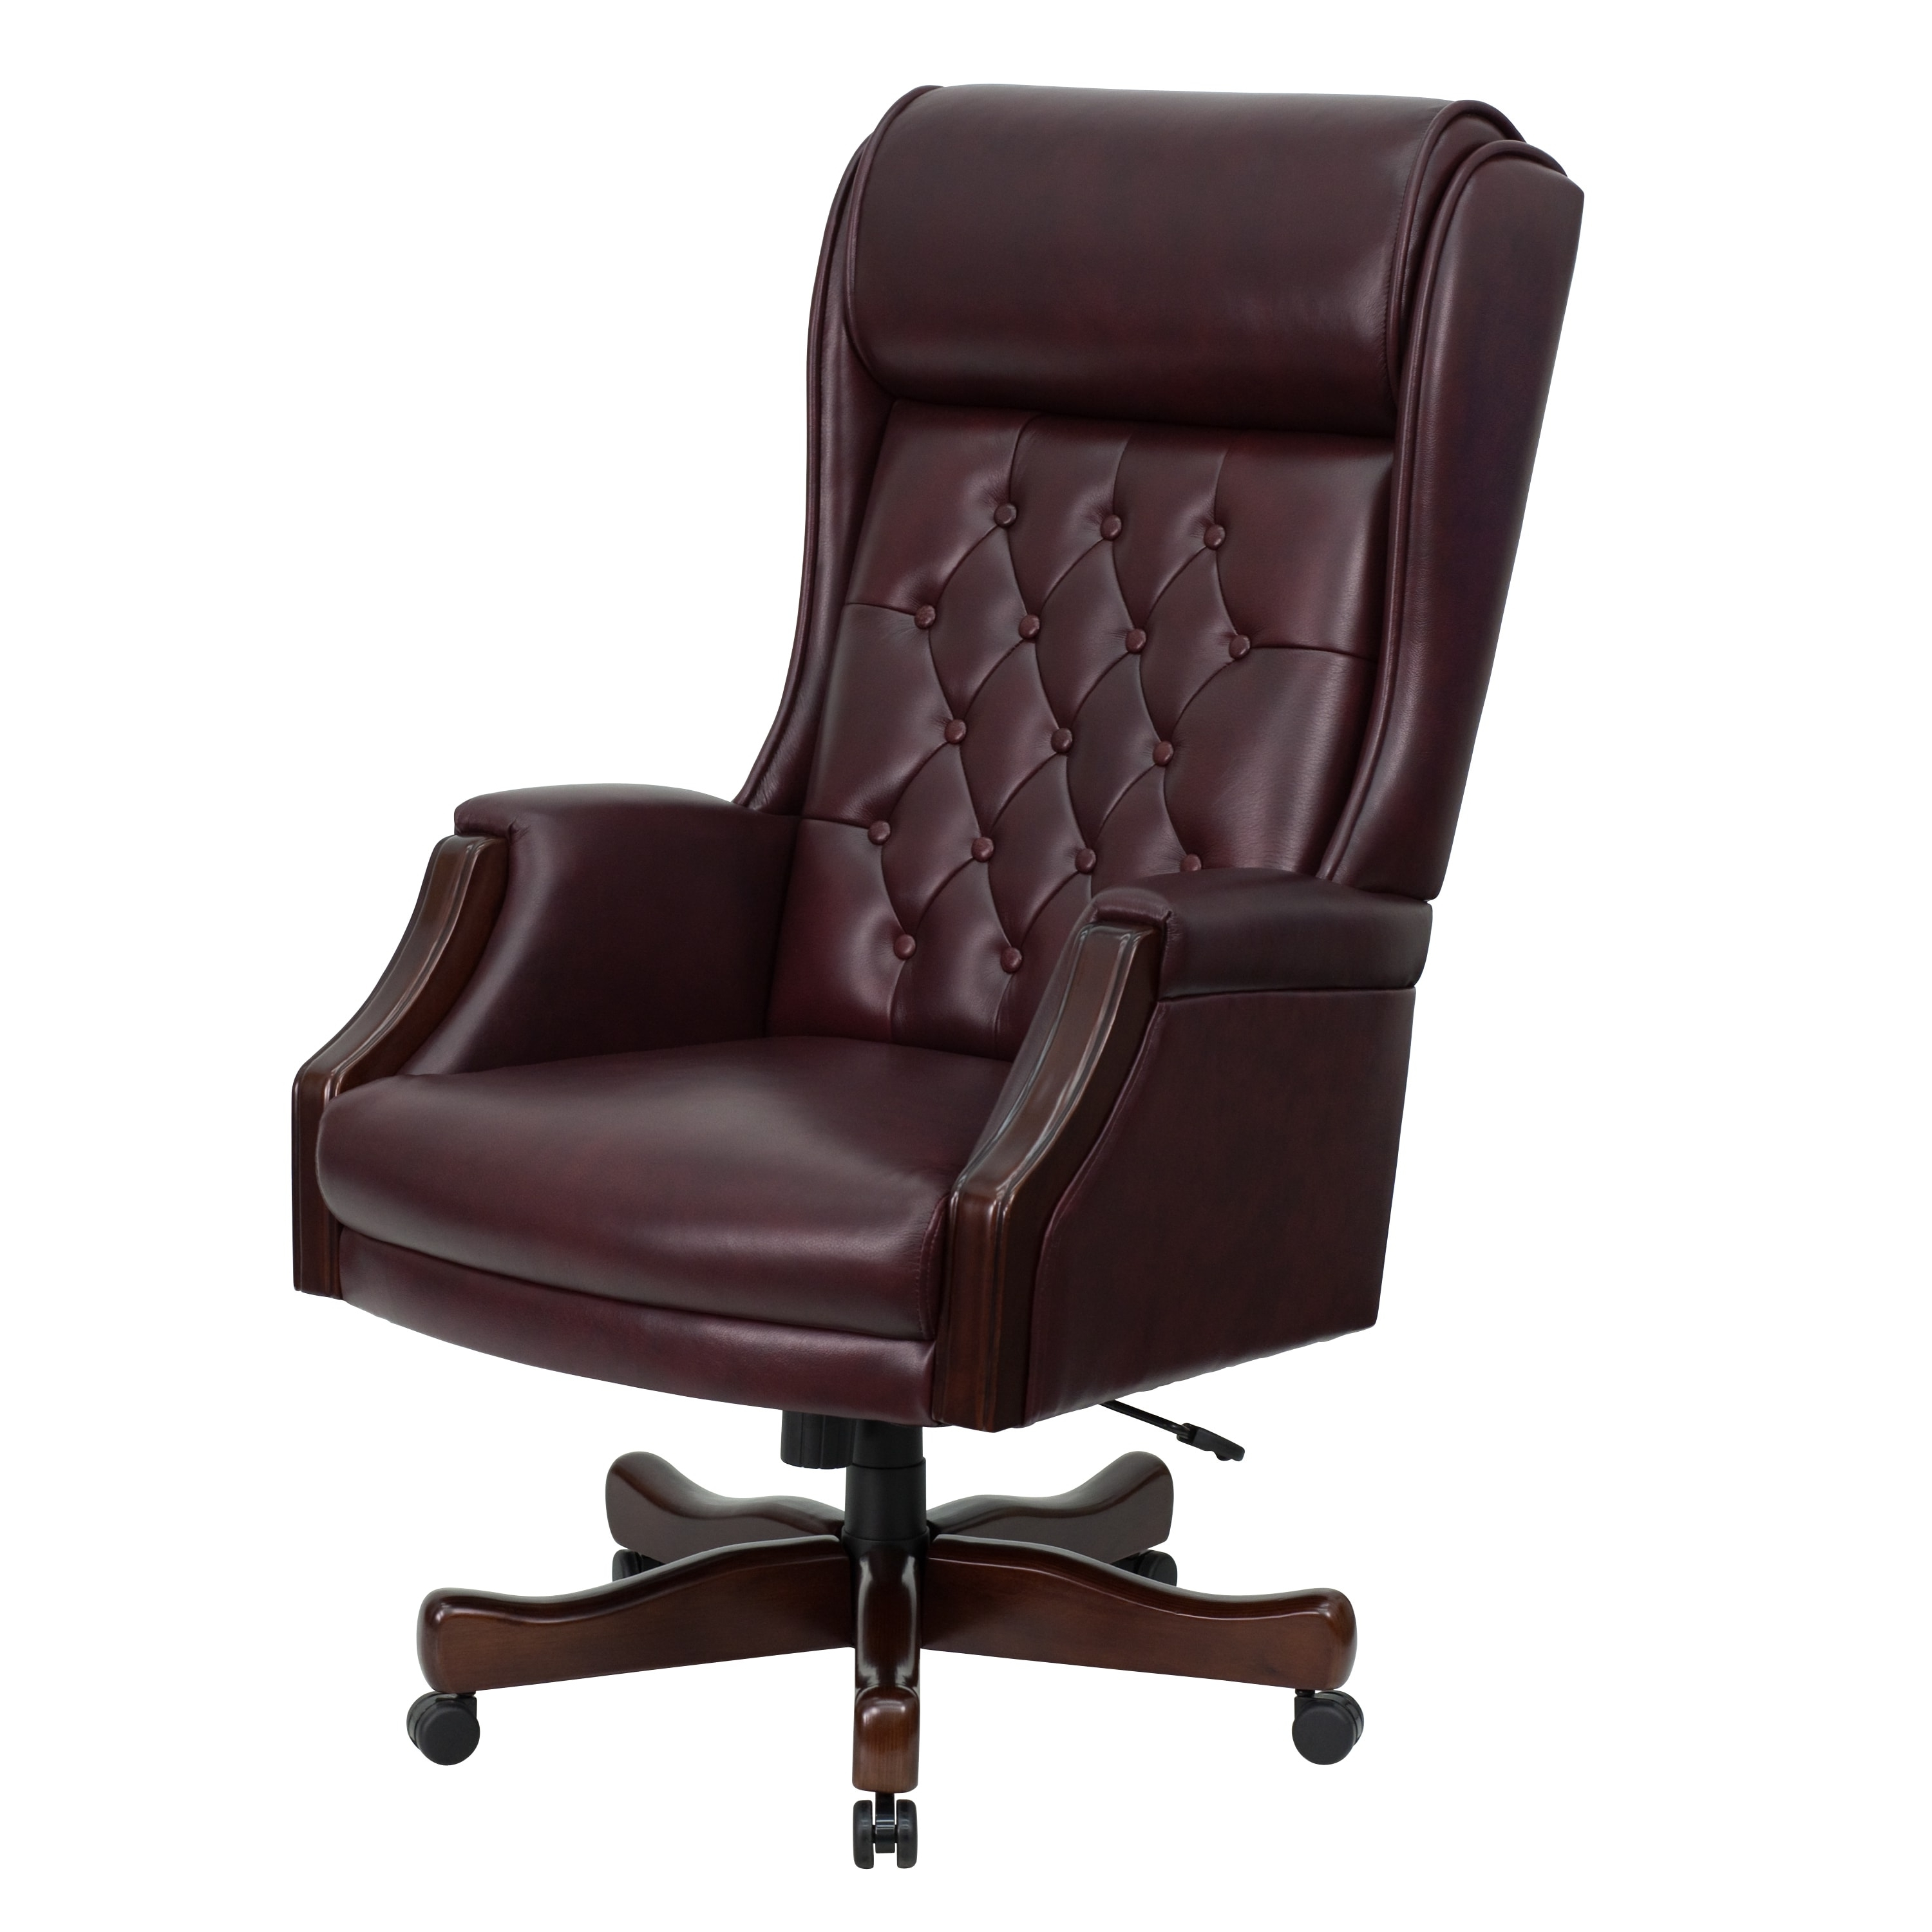 High Back Traditional Tufted Burgundy Leather Executive Office Intended For Fashionable Xl Executive Office Chairs (View 8 of 20)